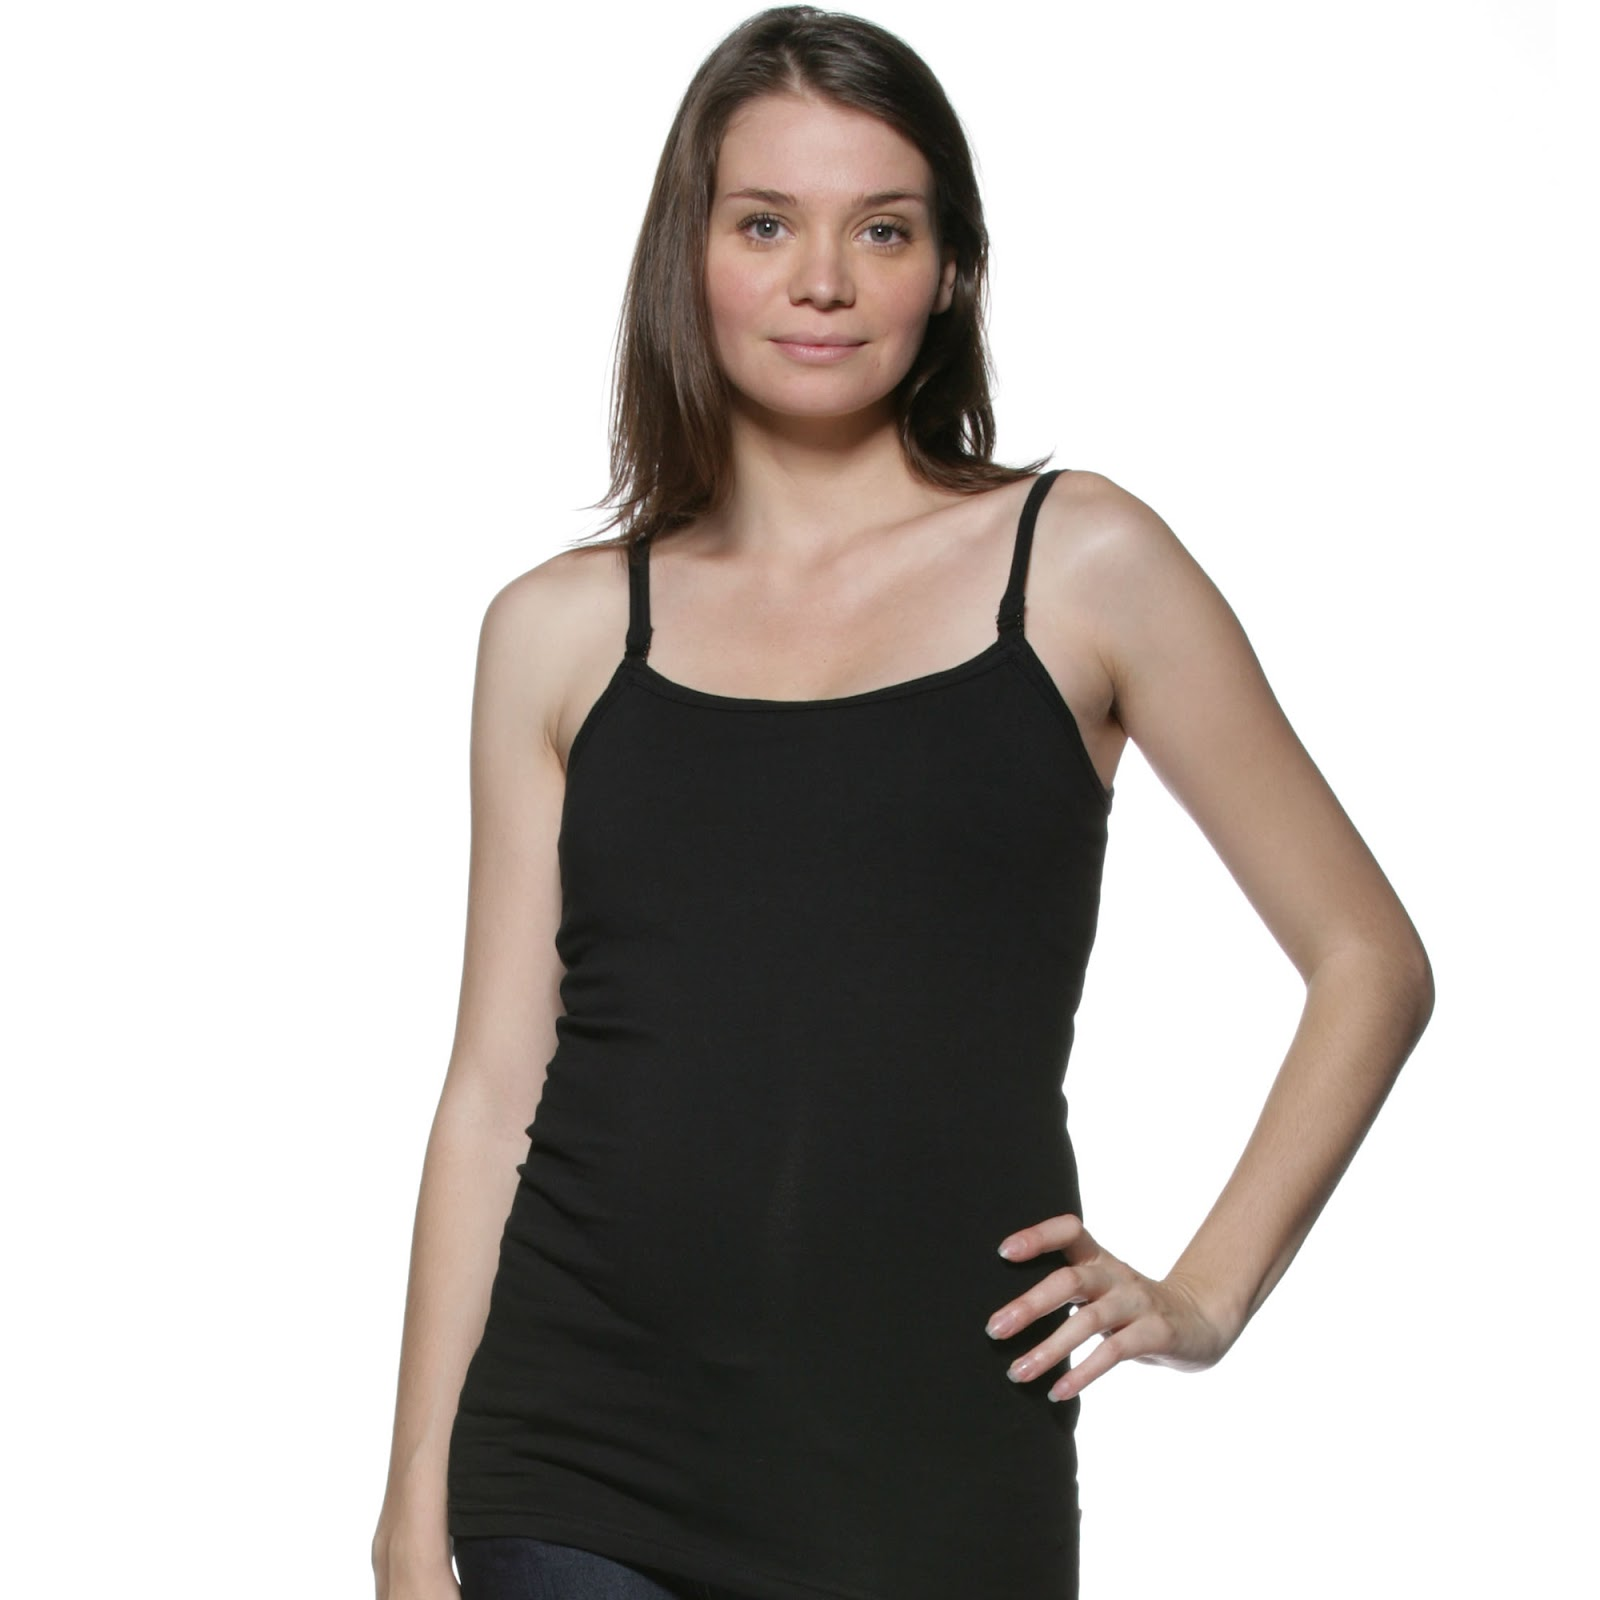 49eeceef00 I received the Glamourmom Nursing Bra Long Tank to try out! I own the  Glamourmom Maternity Tank and I loved how supportive it was throughout my  pregnancy!